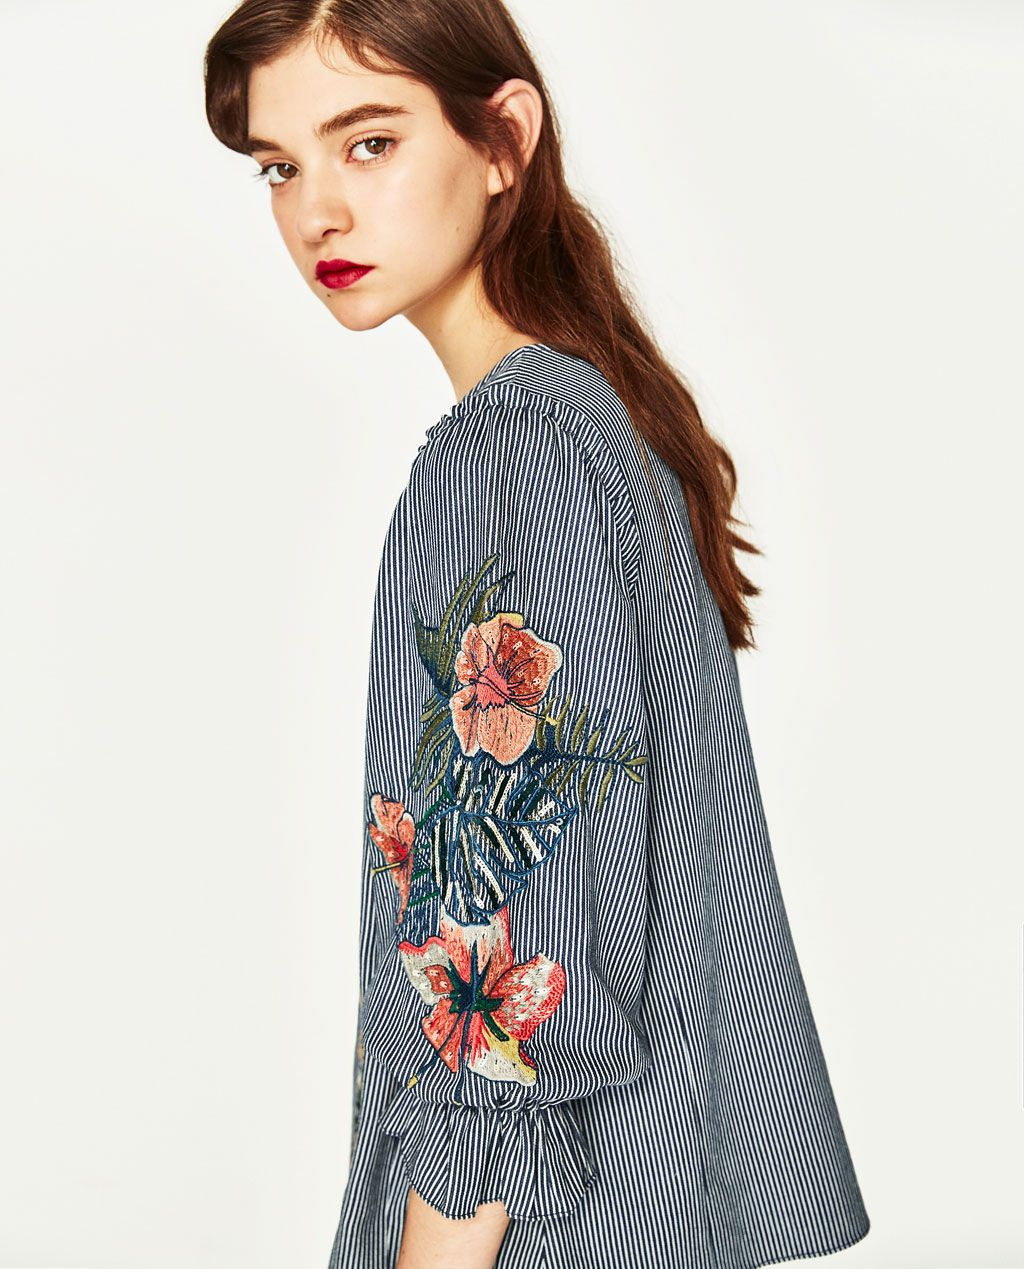 2f9f54cce1fa60 EMBROIDERED FLOWER TOP | Dream closet | Embroidered flowers, Tops ...